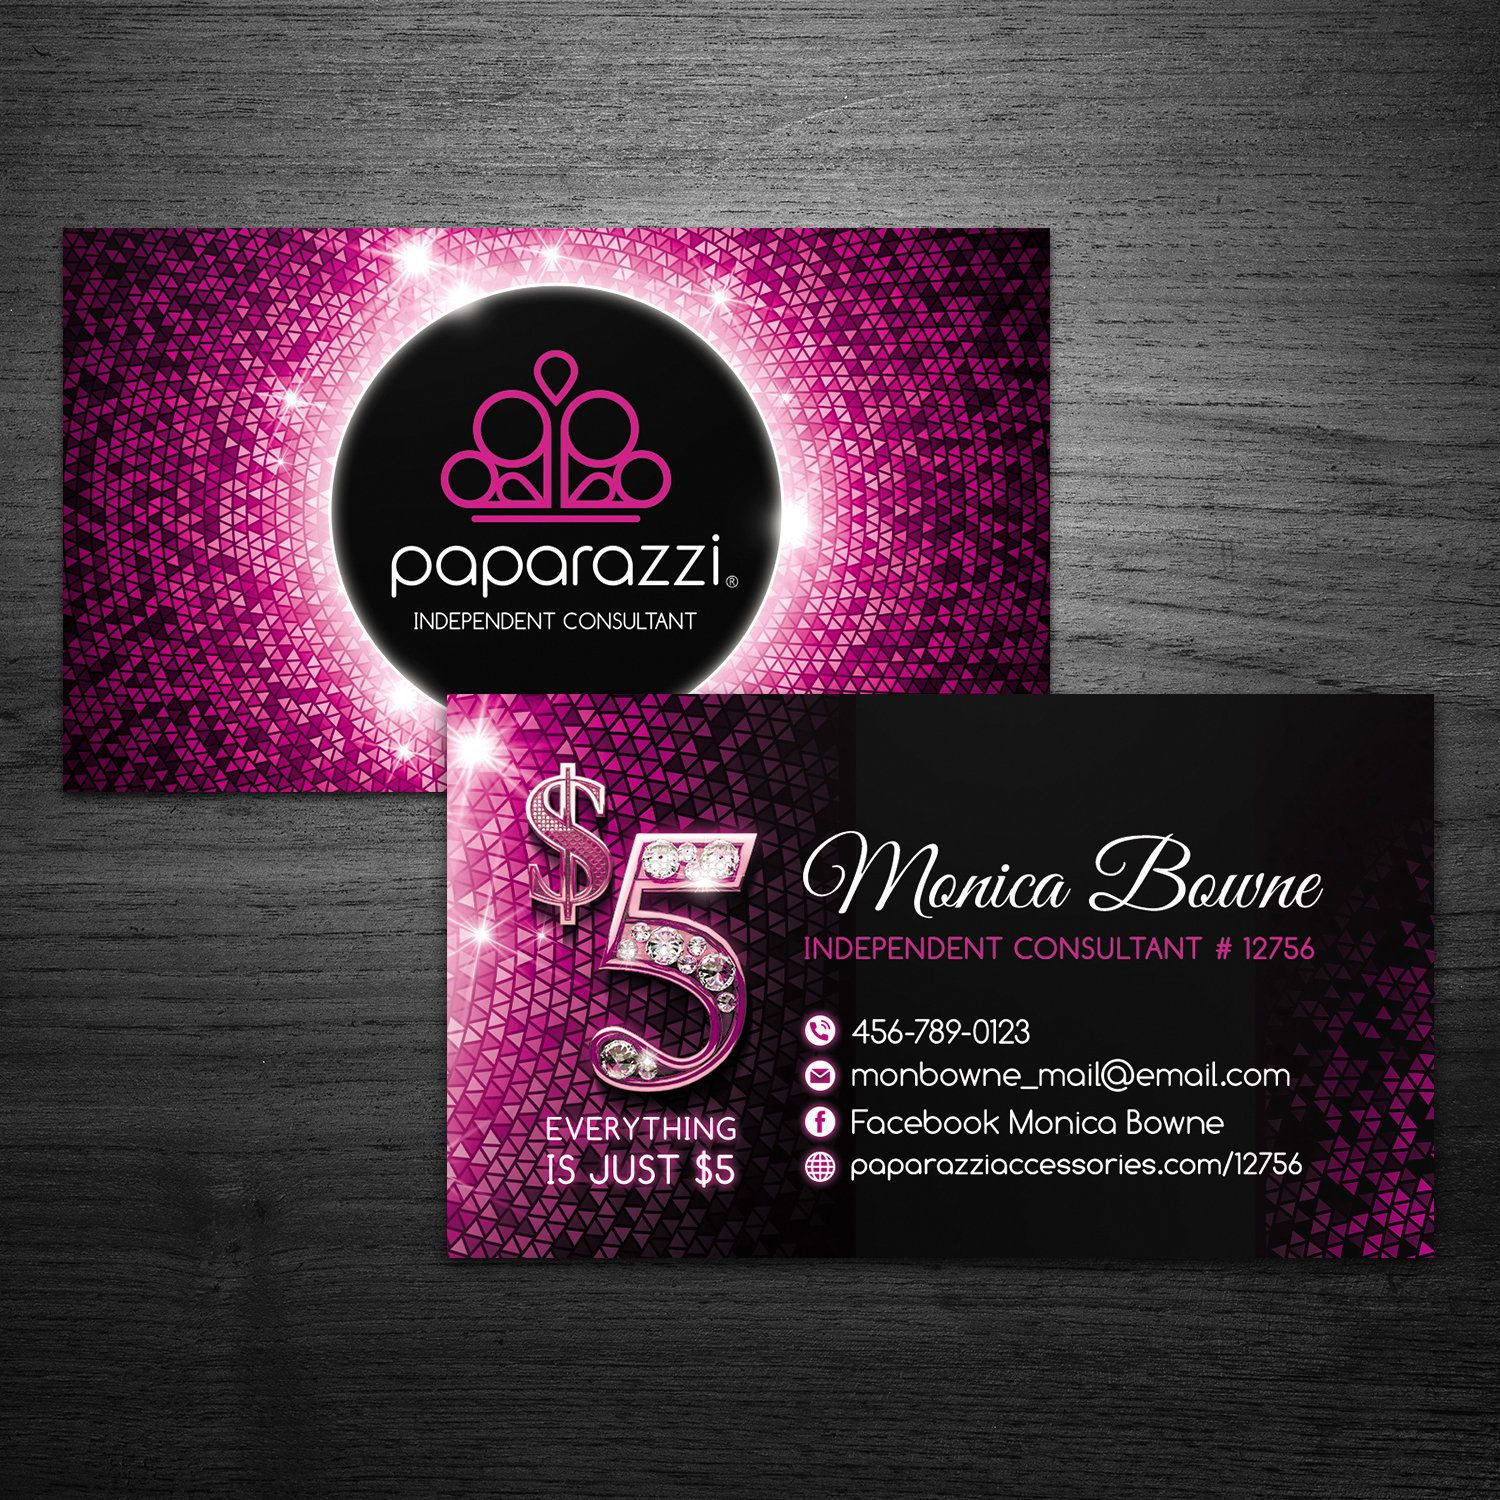 Paparazzi Business Cards Custom Business Cards Paparazzi Business Card Paparazzi Jewelry Paparazz Jewelry Business Card Custom Business Cards Paparazzi